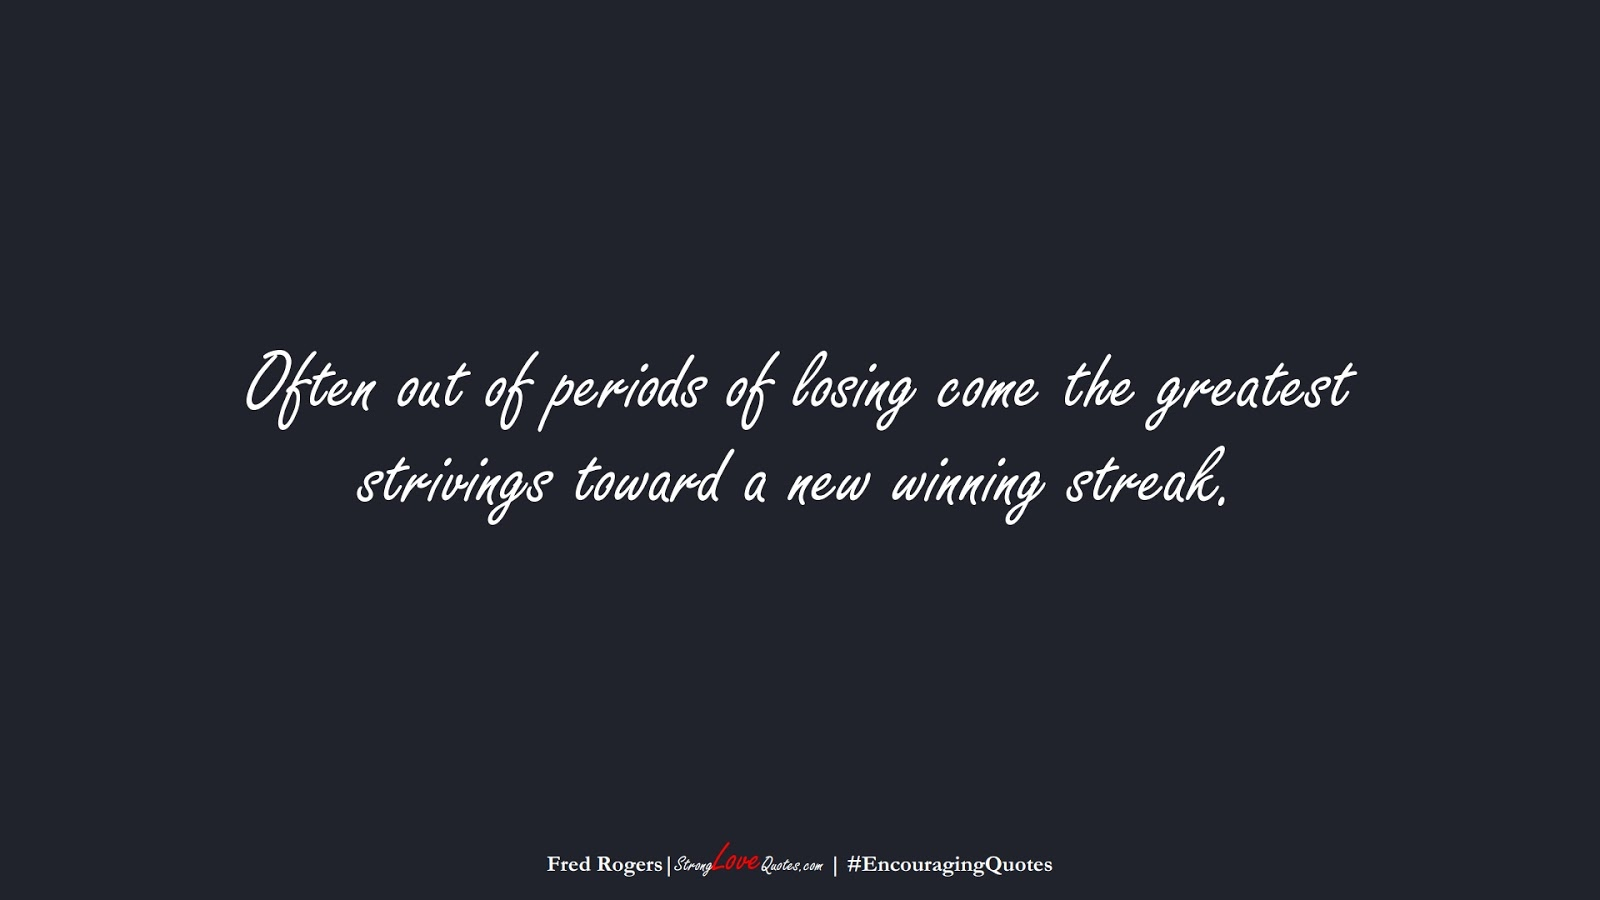 Often out of periods of losing come the greatest strivings toward a new winning streak. (Fred Rogers);  #EncouragingQuotes